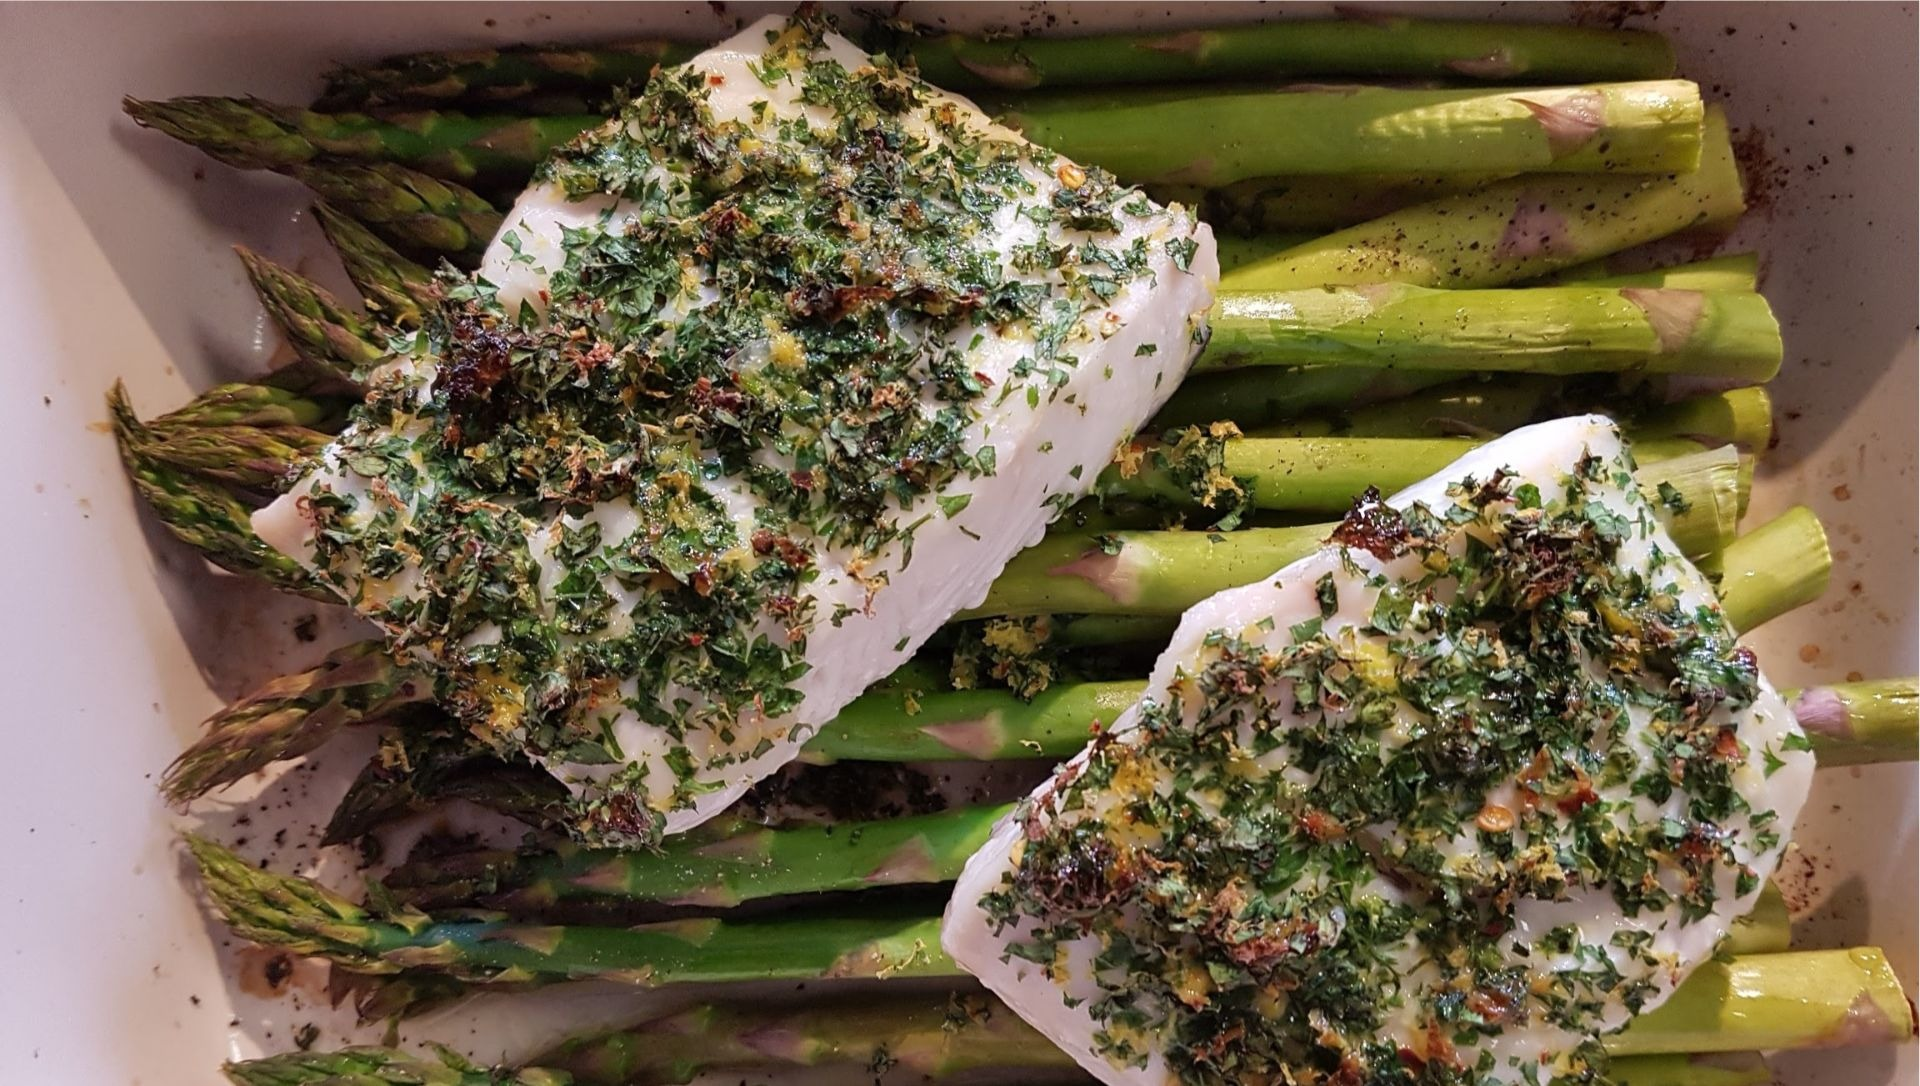 Halibut and asparagus spears in baking pan